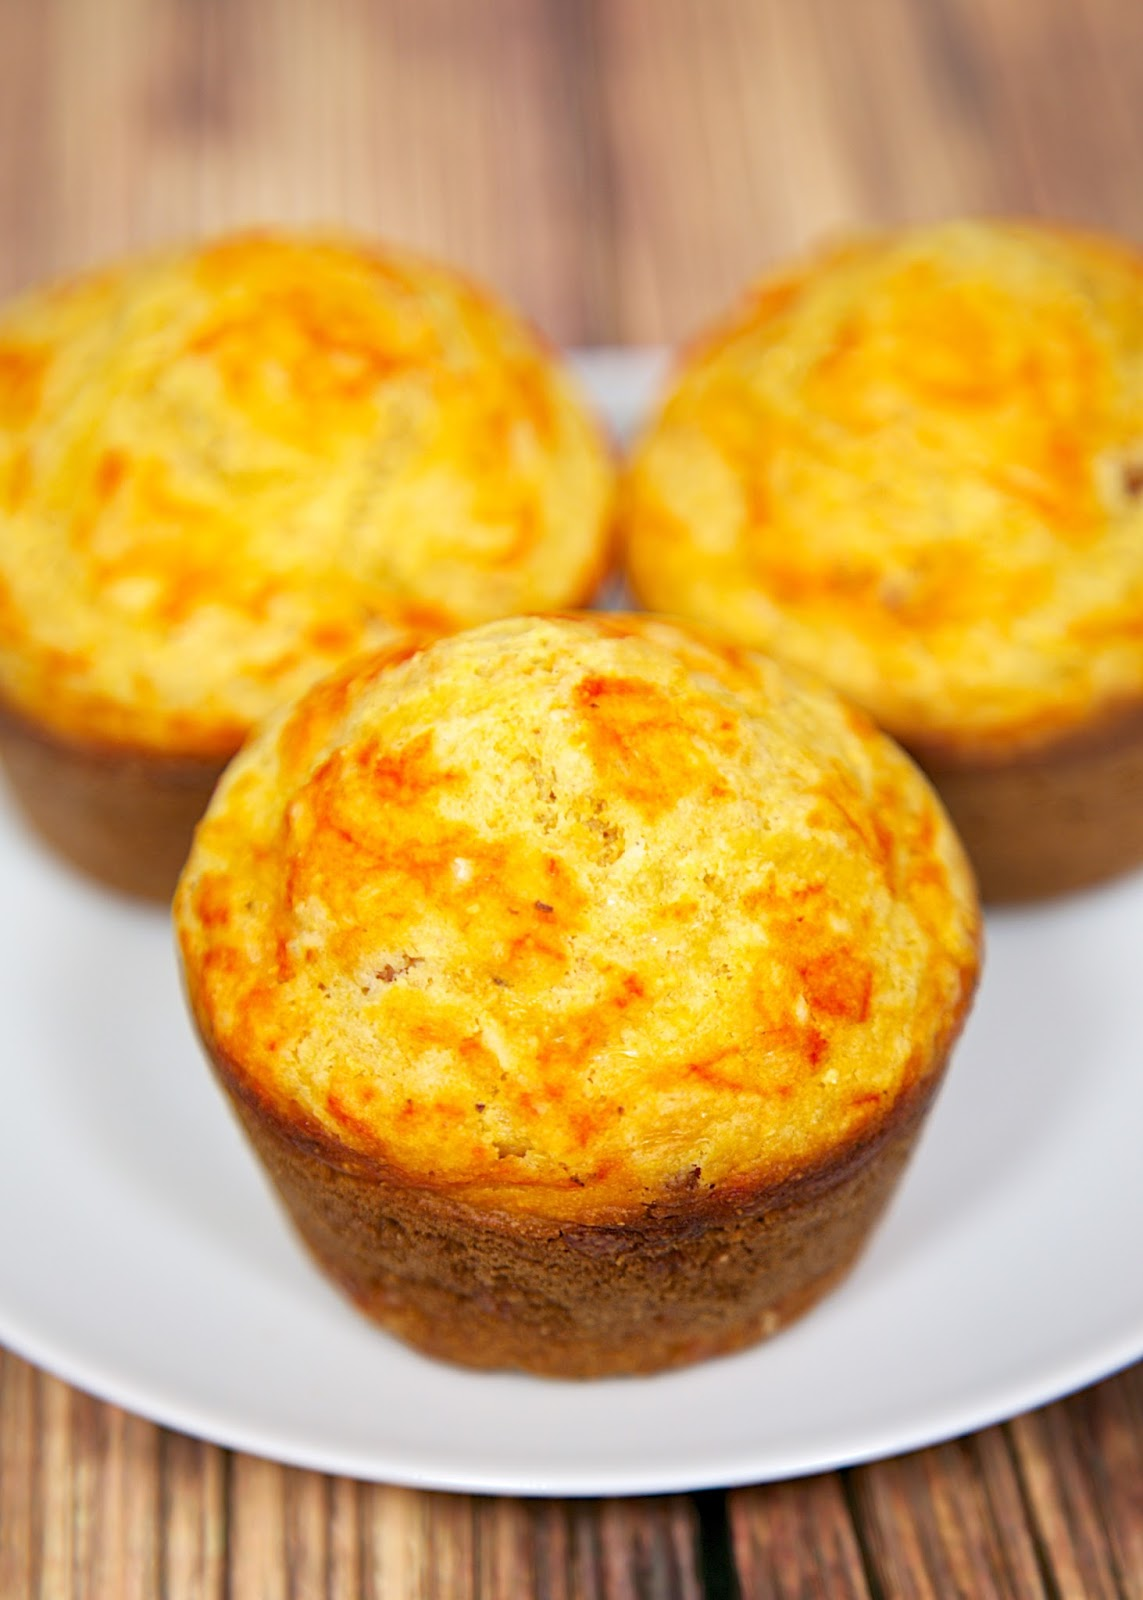 Bacon & Sriracha Corn Muffins Recipe - homemade corn muffins with bacon and a swirl of Sriracha. Great with soups, stews and grilled meats.